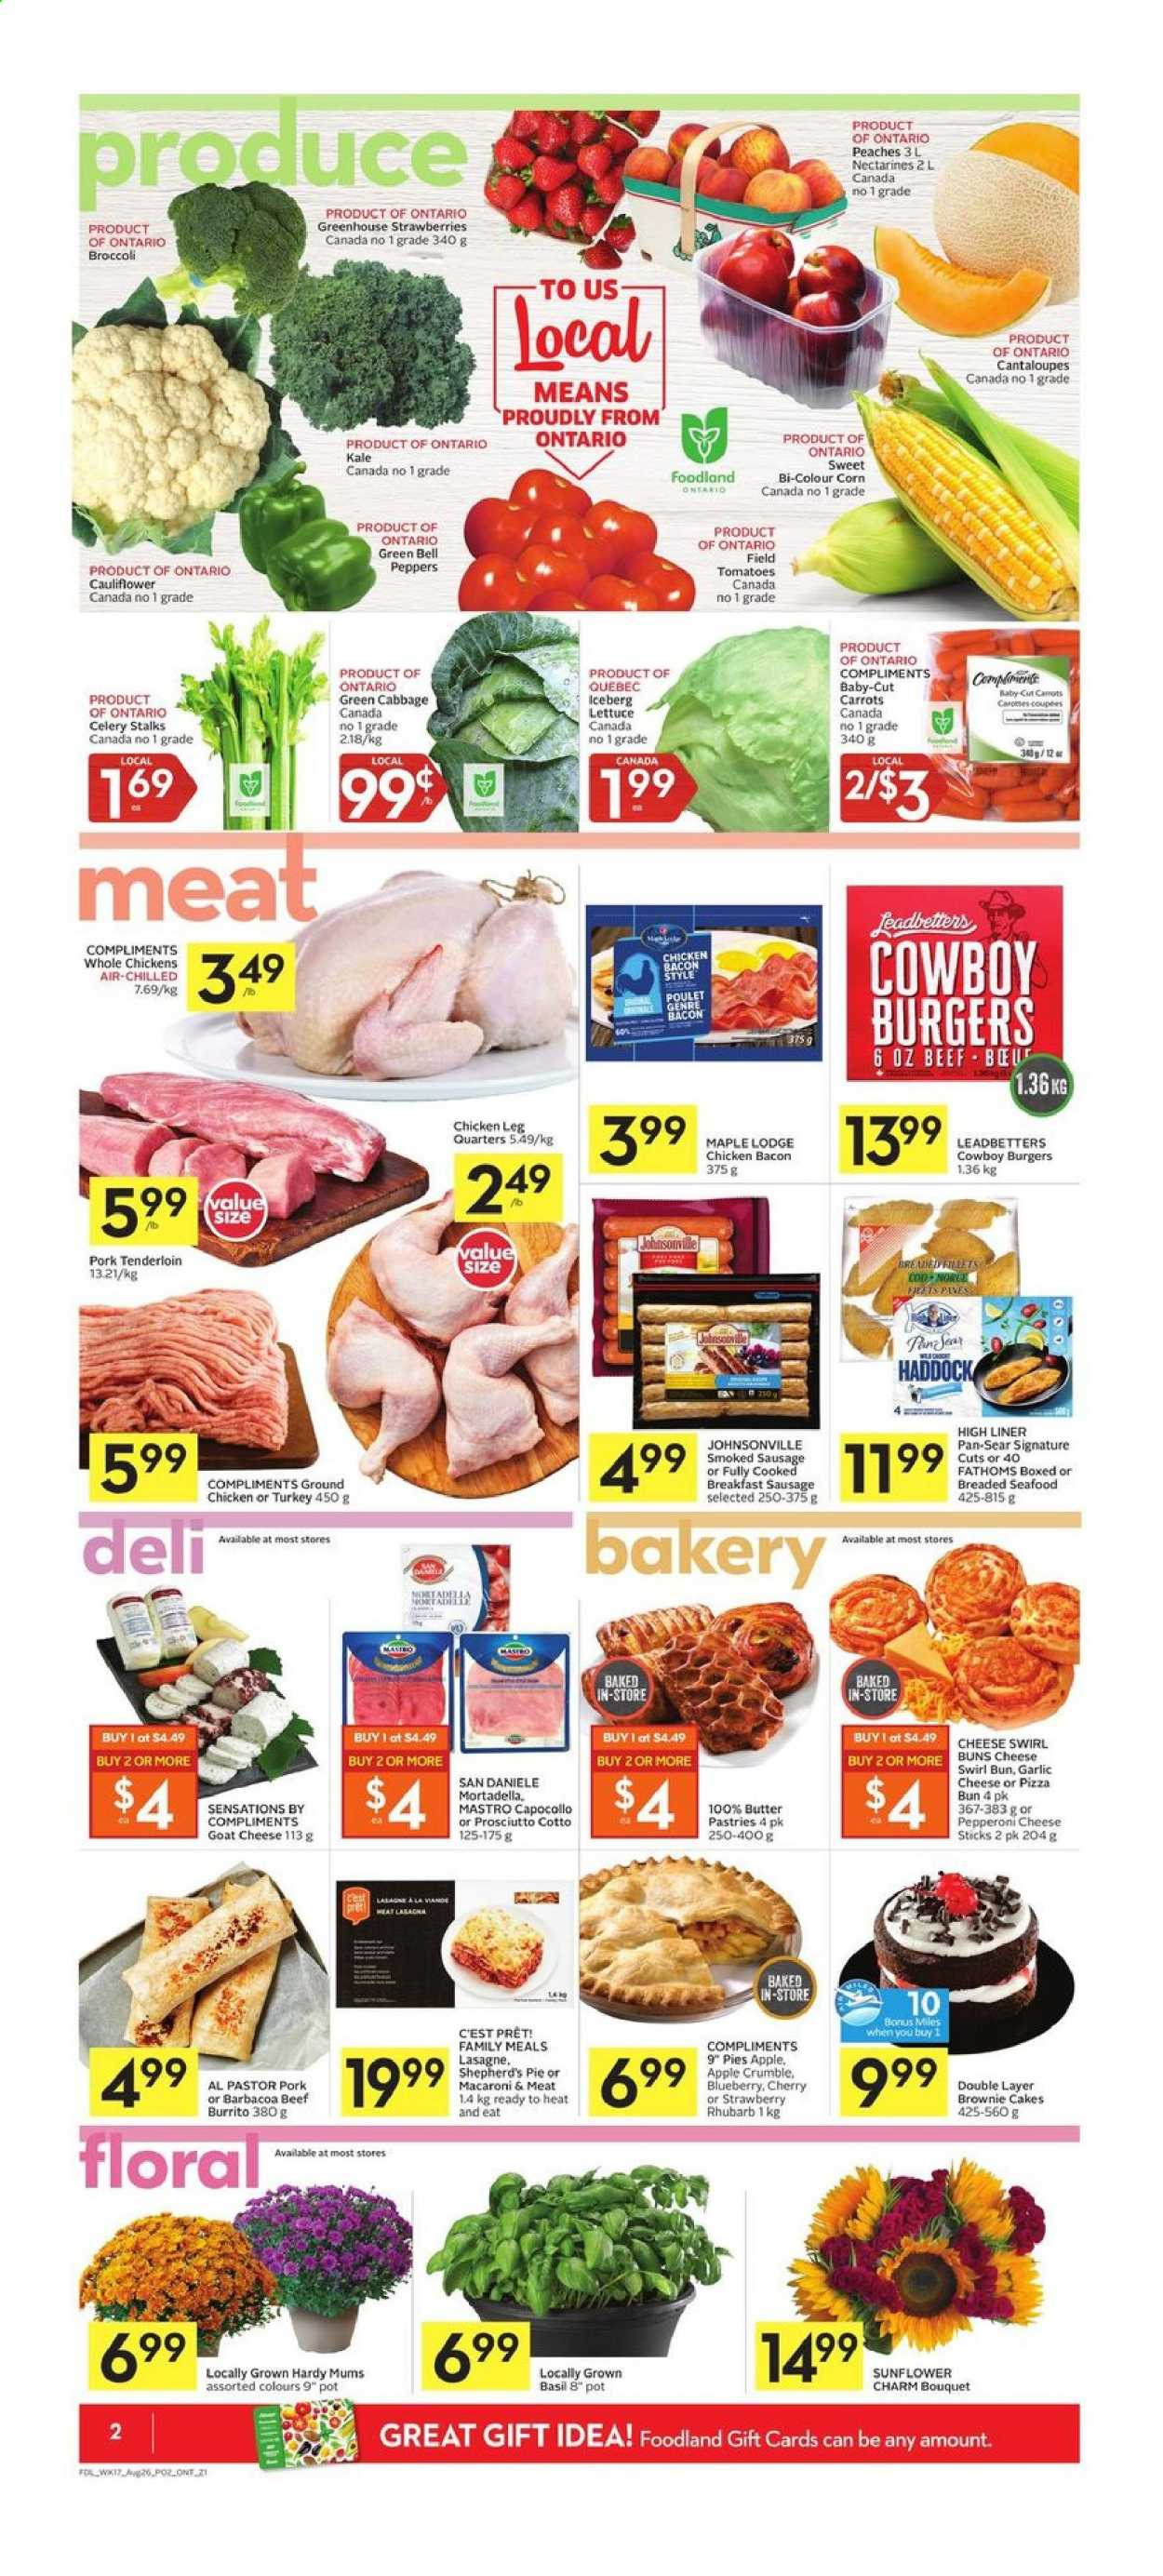 Foodland Flyer - August 20, 2020 - August 26, 2020 - Sales products - apples, bacon, basil, beef meat, bell peppers, broccoli, butter, cabbage, cantaloupe, carrots, celery, corn, garlic, goat cheese, greenhouse, ground chicken, lasagne, mortadella, nectarines, rhubarb, sausage, smoked sausage, strawberries, tomatoes, turkey, haddock, kale, pizza, pork meat, pork tenderloin, pot, prosciutto, chicken, pan, peaches, pepperoni, lettuce, tenderloin, cheese, pie, macaroni, seafood, strawberry, poulet, swirl, lasagnes, cotto. Page 2.